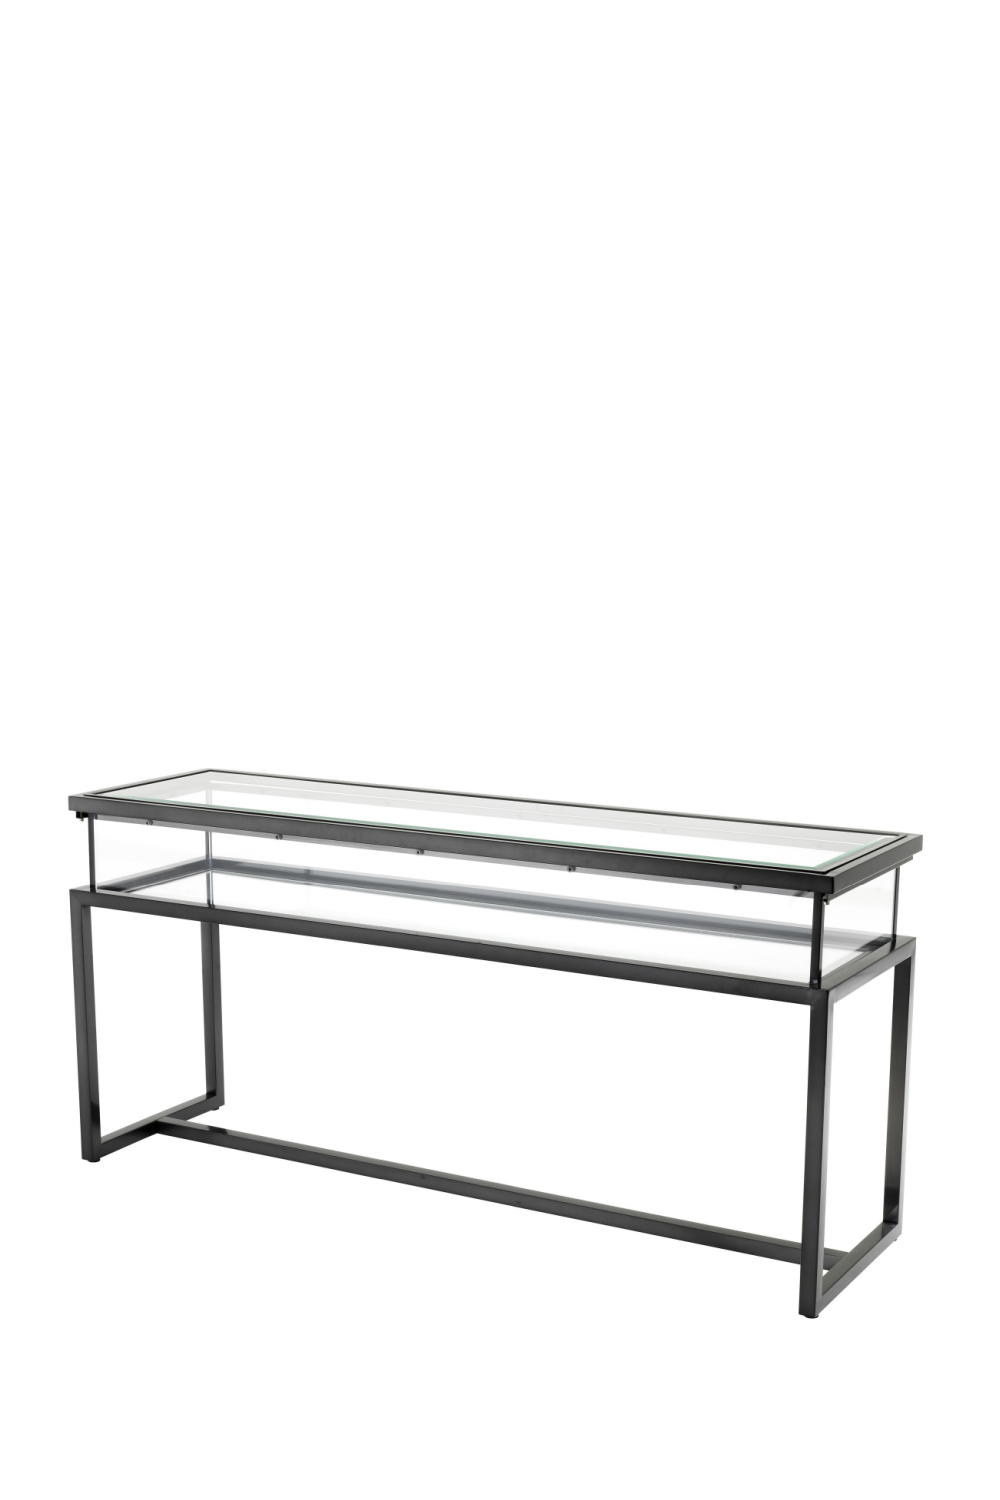 Bronze Sliding Top Console Table | Eichholtz | #1 Eichholtz Retailer